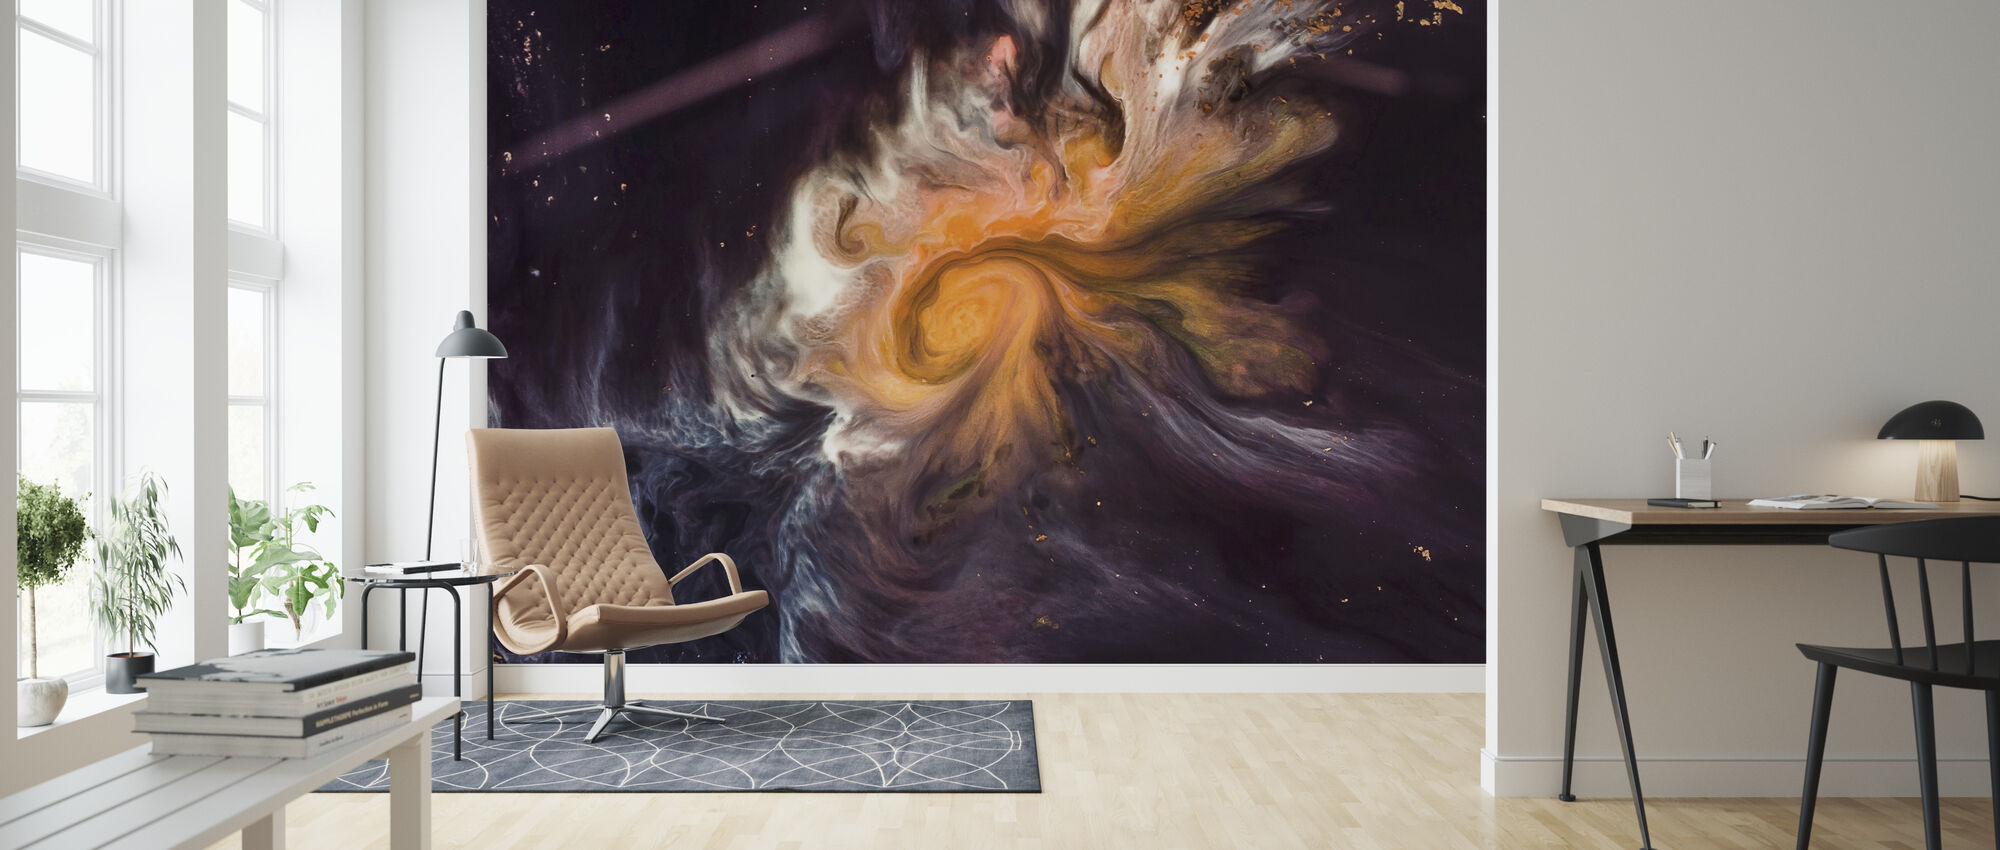 Space Story - Wallpaper - Living Room